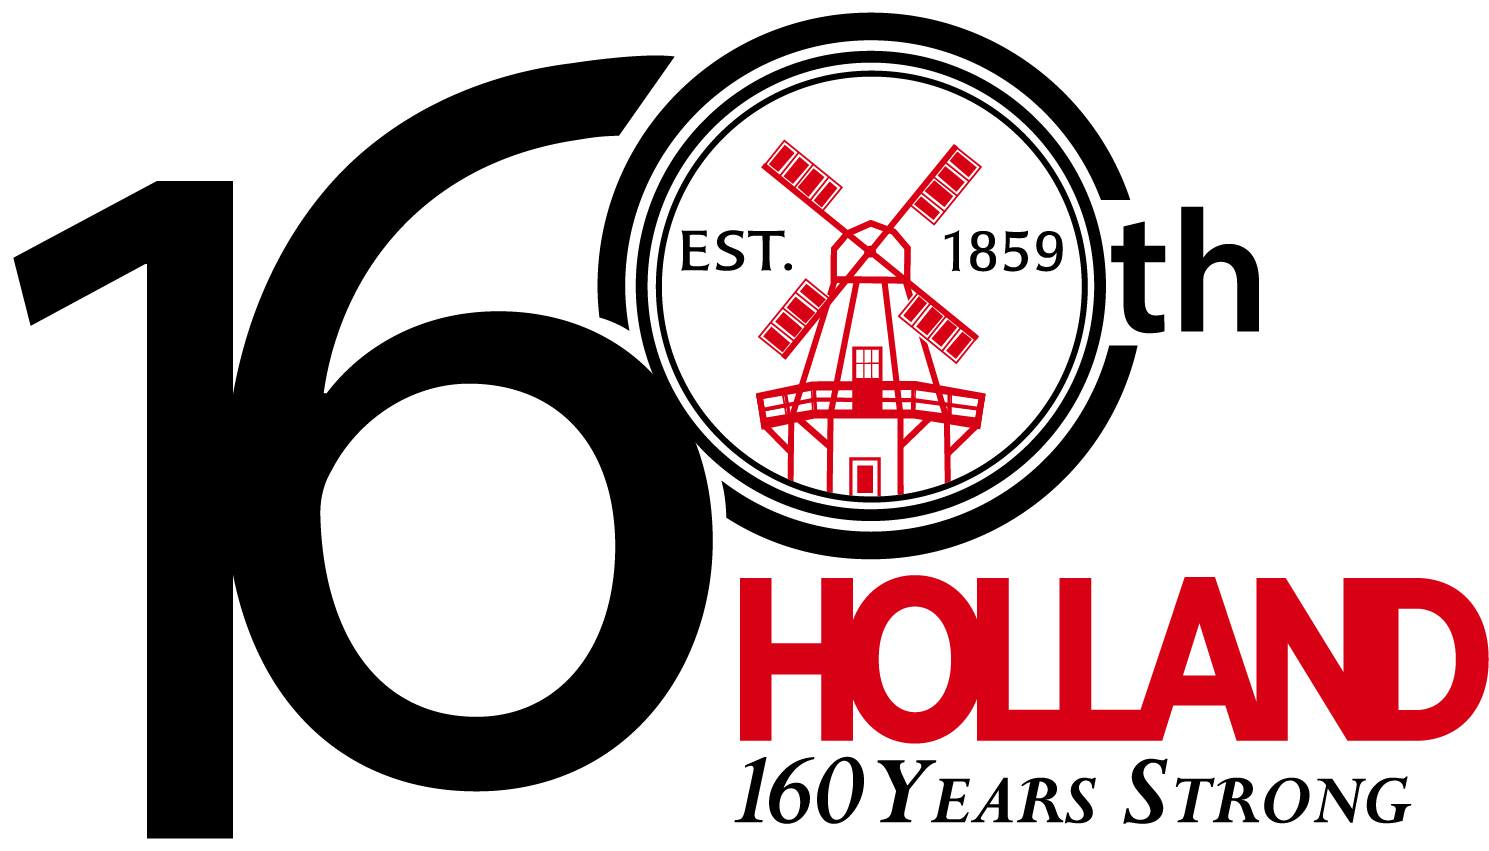 Holland Celebrates 160 Years with Annual Community Festival